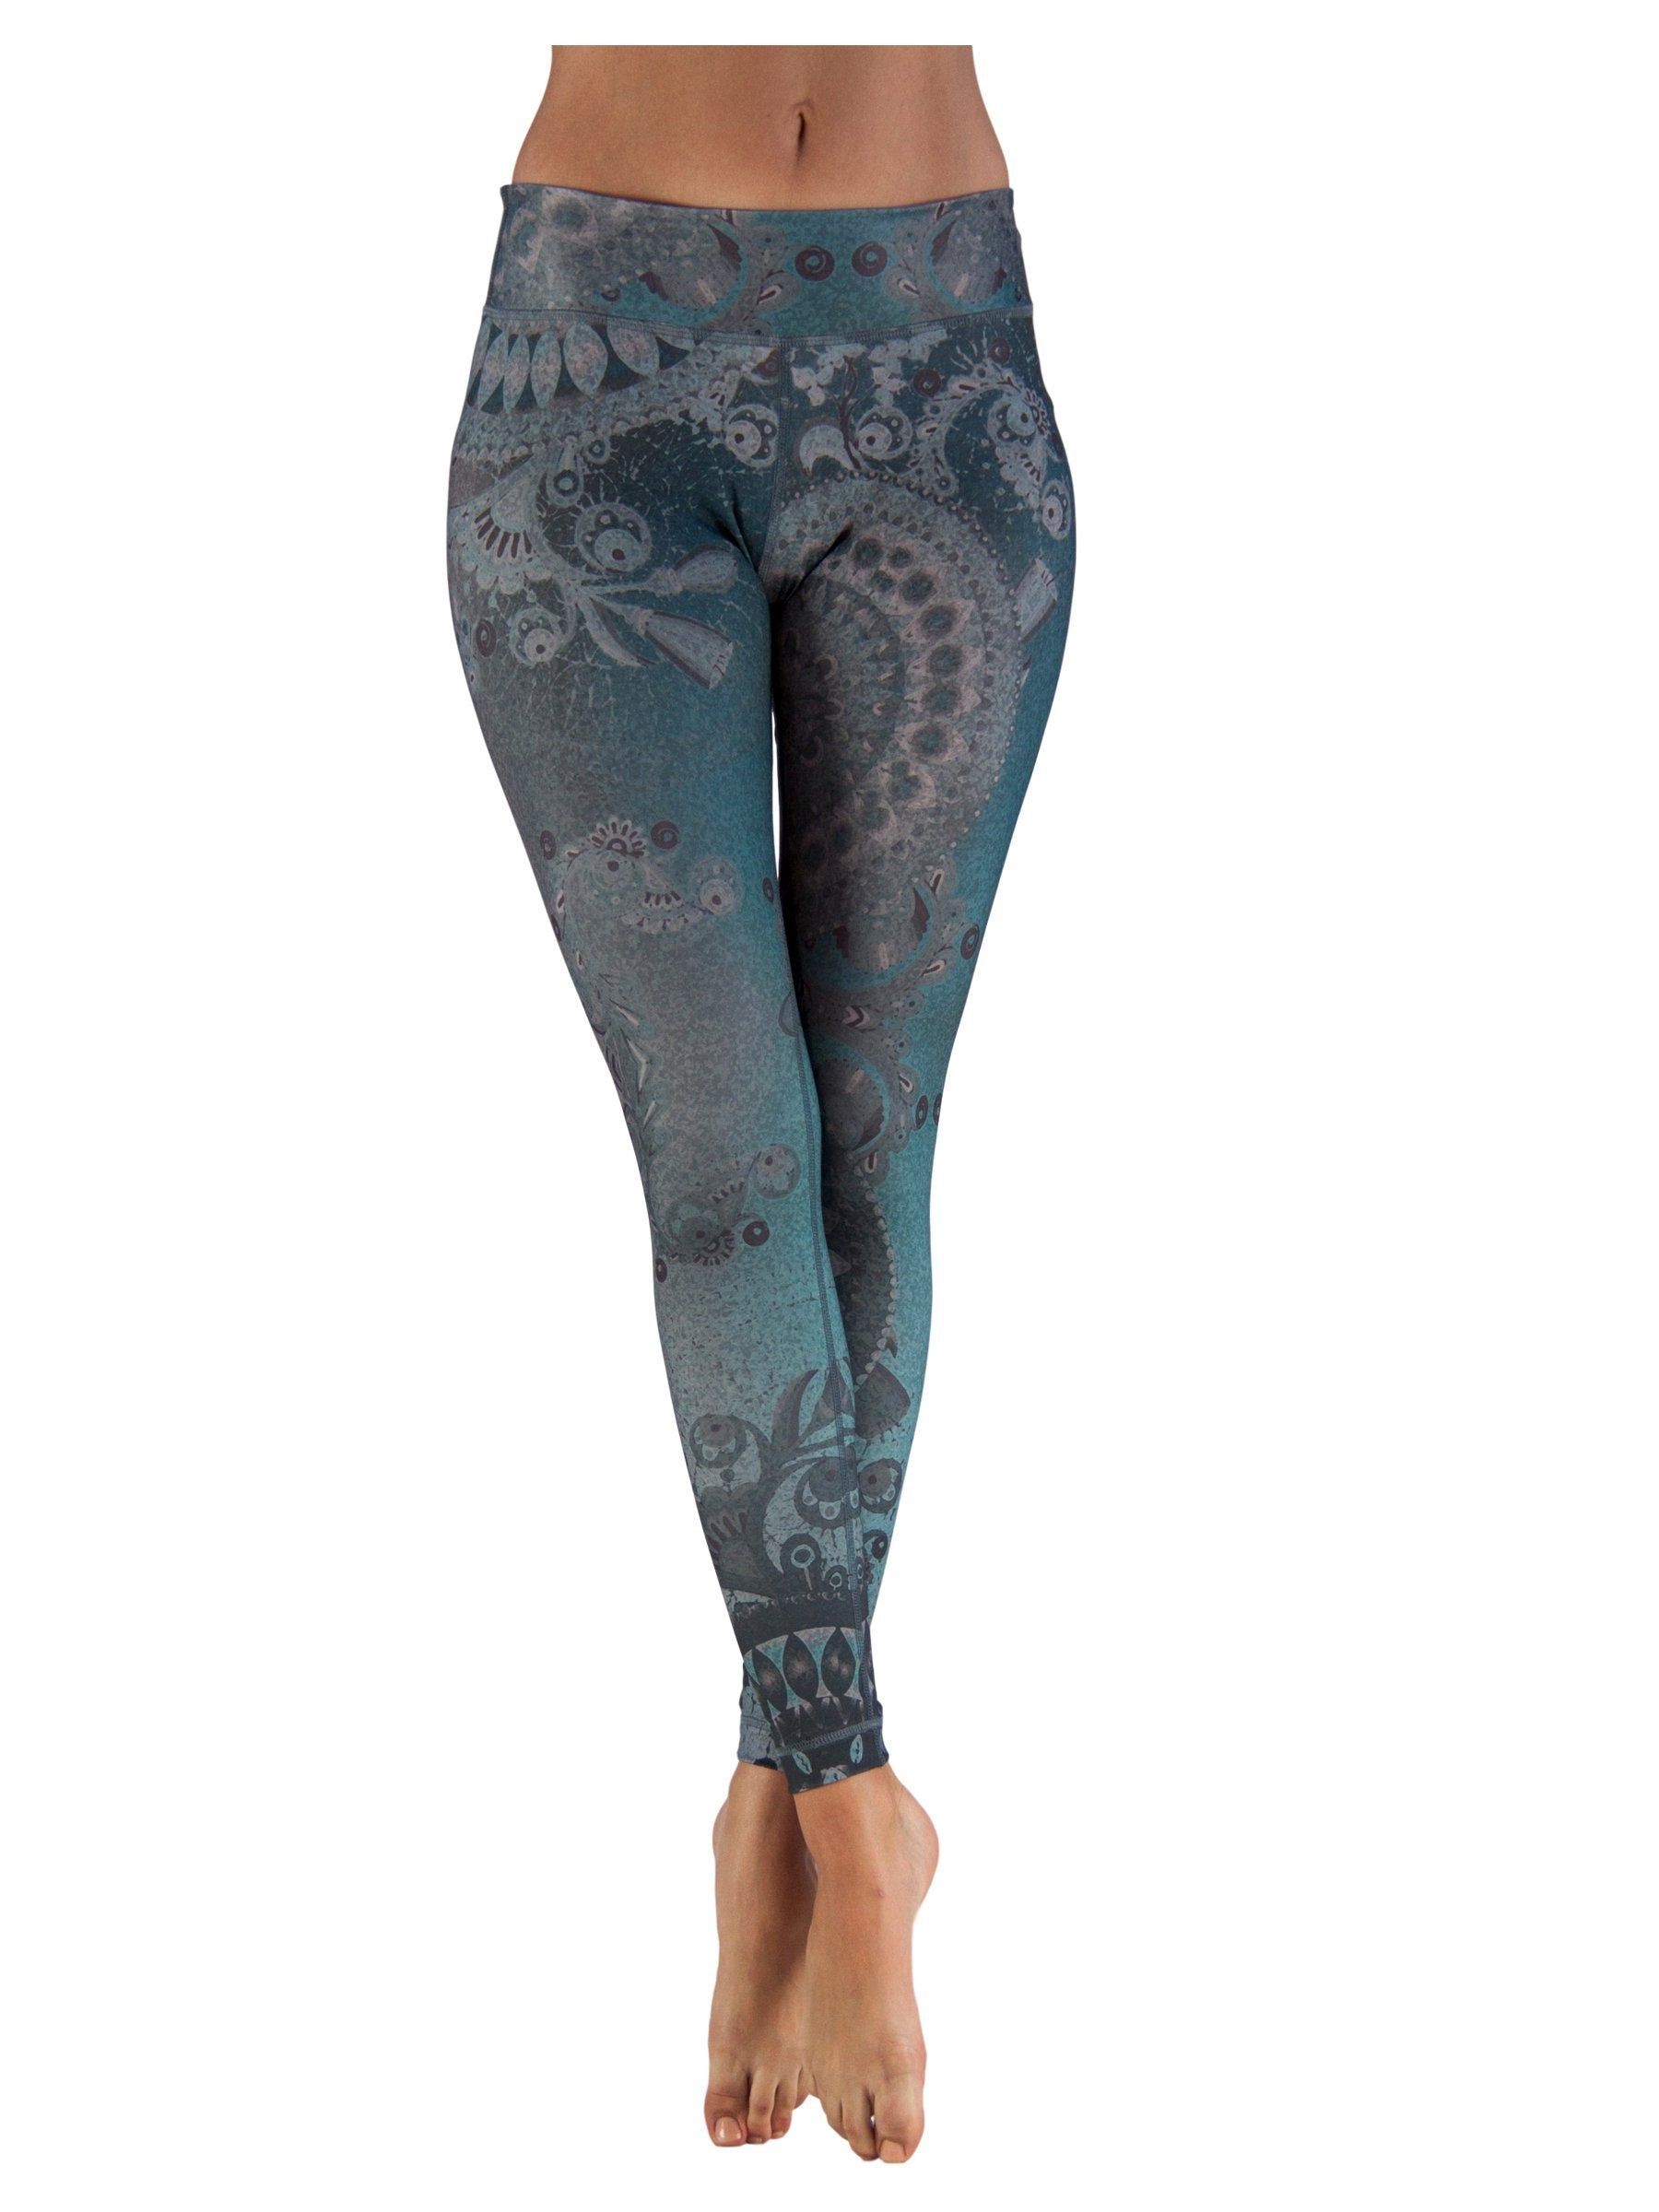 Gypsy Love by Niyama - High Quality, Yoga Legging for Movement Artists.